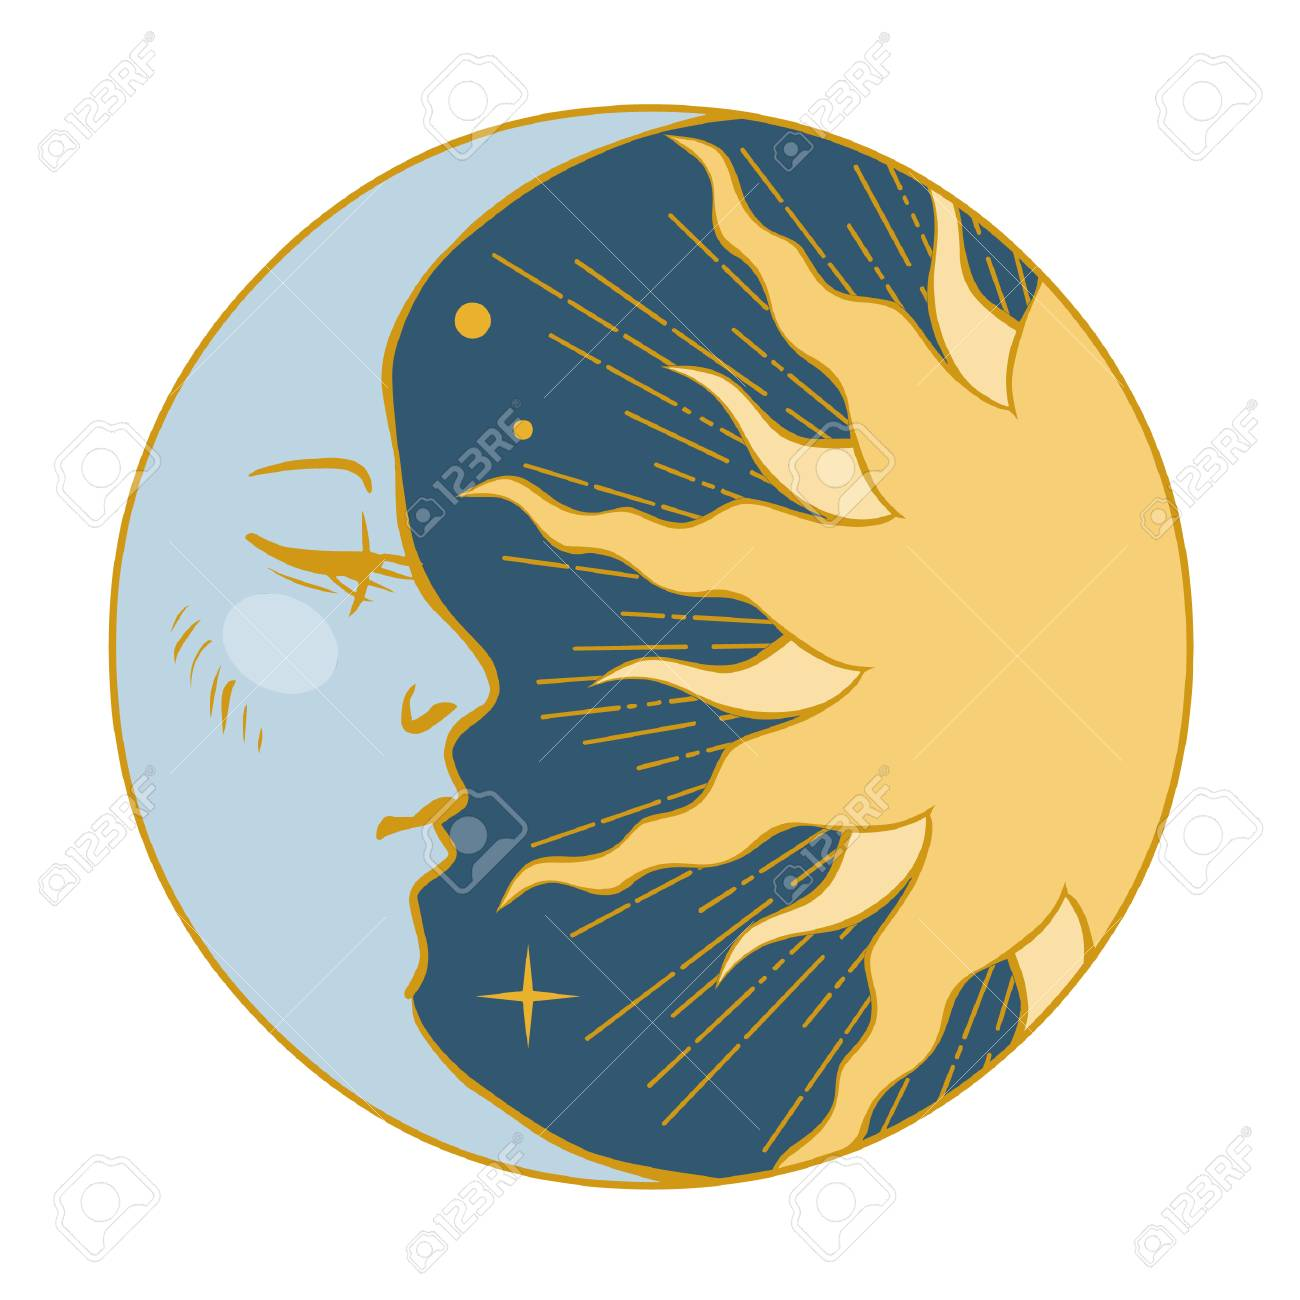 Moon and Sun. Vector illustration in vintage style - 93045900